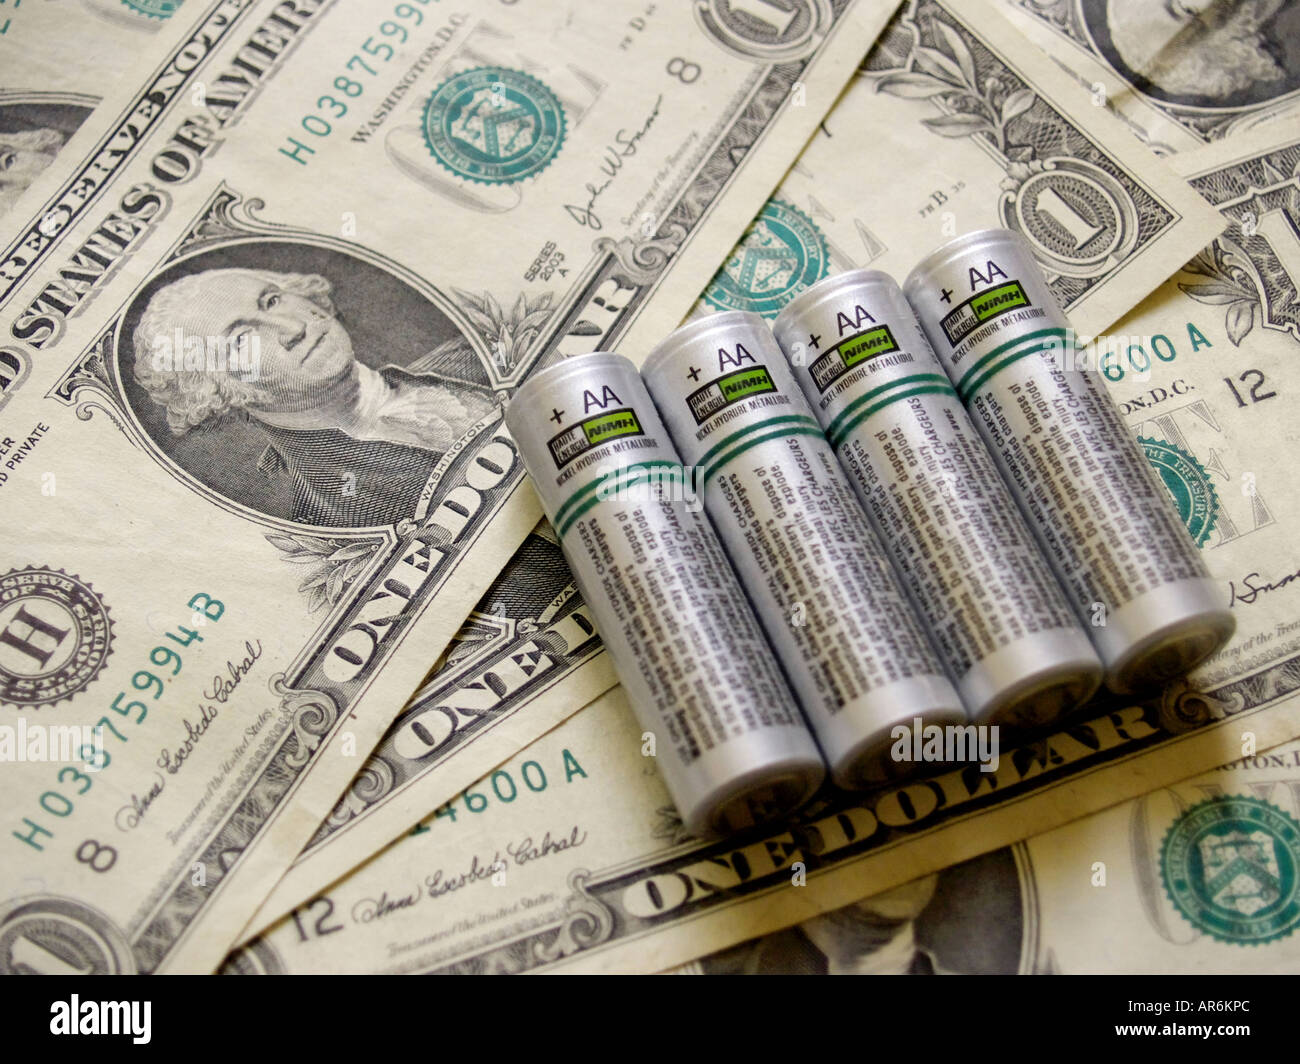 Four silver colored NiMH AA battery cells against a background of dollar bills. Stock Photo